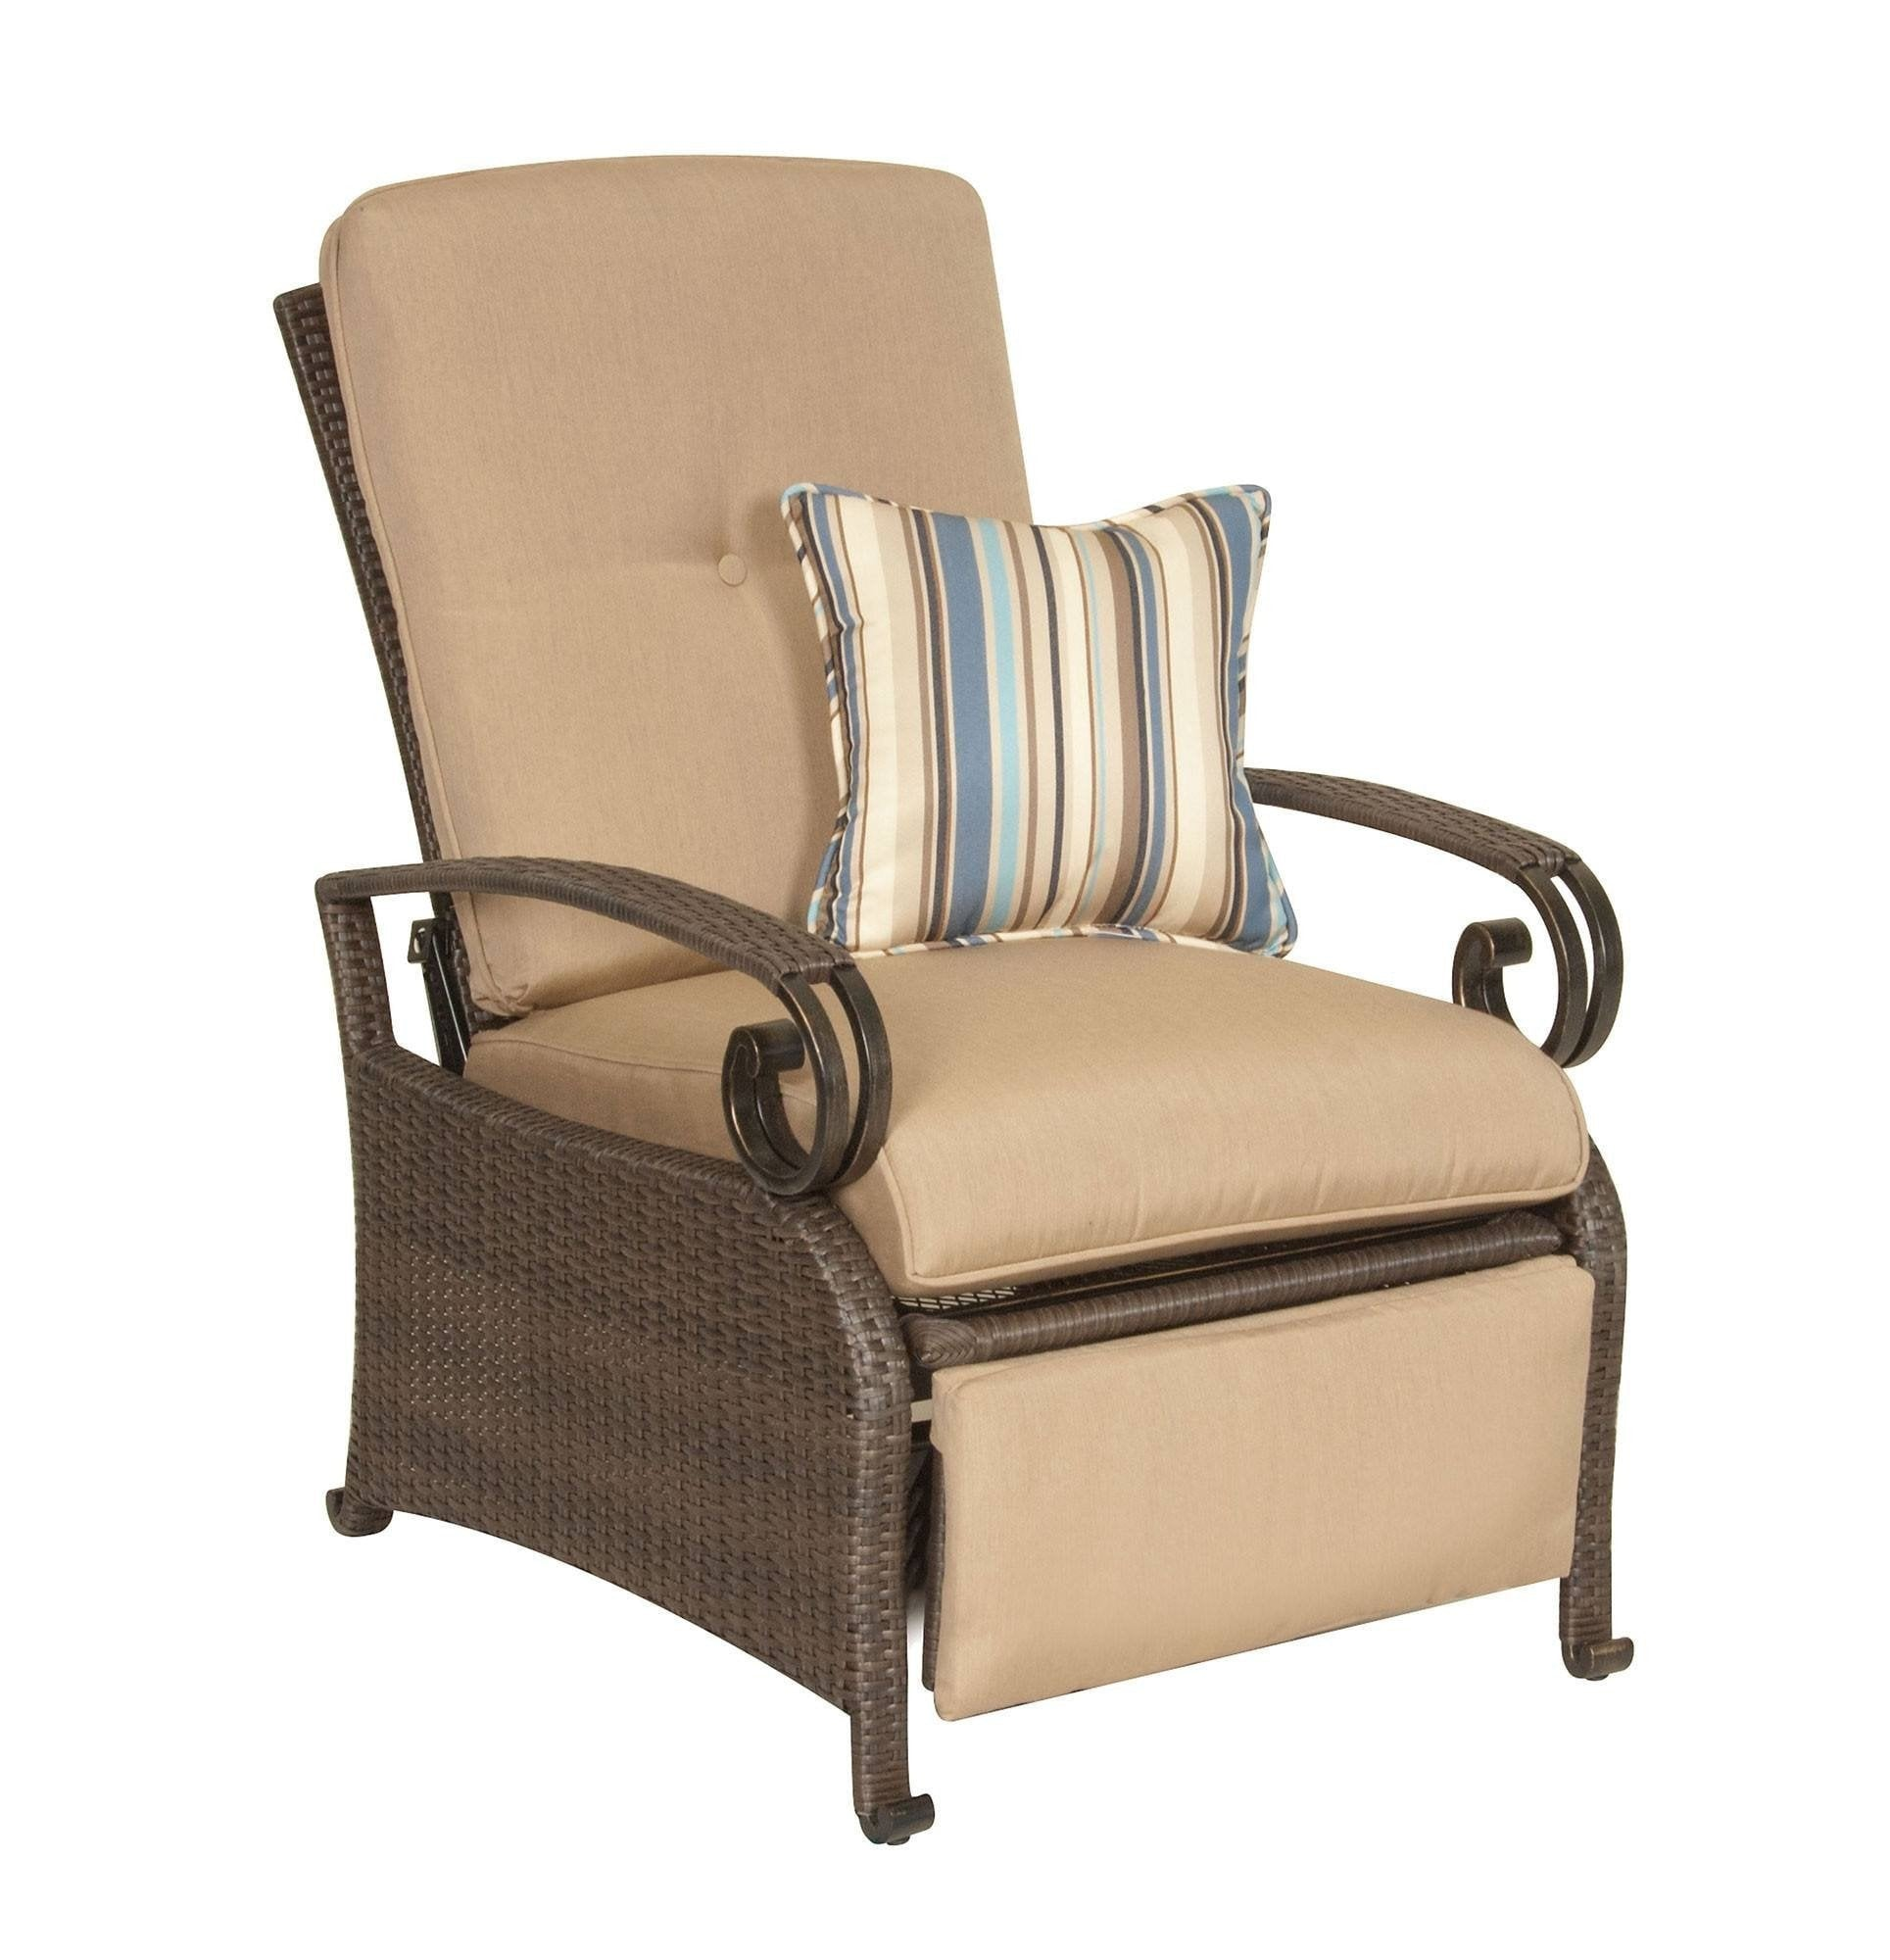 Recliner - Lake Como Patio Recliner (Khaki Tan)  sc 1 st  La-Z-Boy Outdoor & Lake Como Patio Recliner (Khaki Tan) u2013 La-Z-Boy Outdoor islam-shia.org